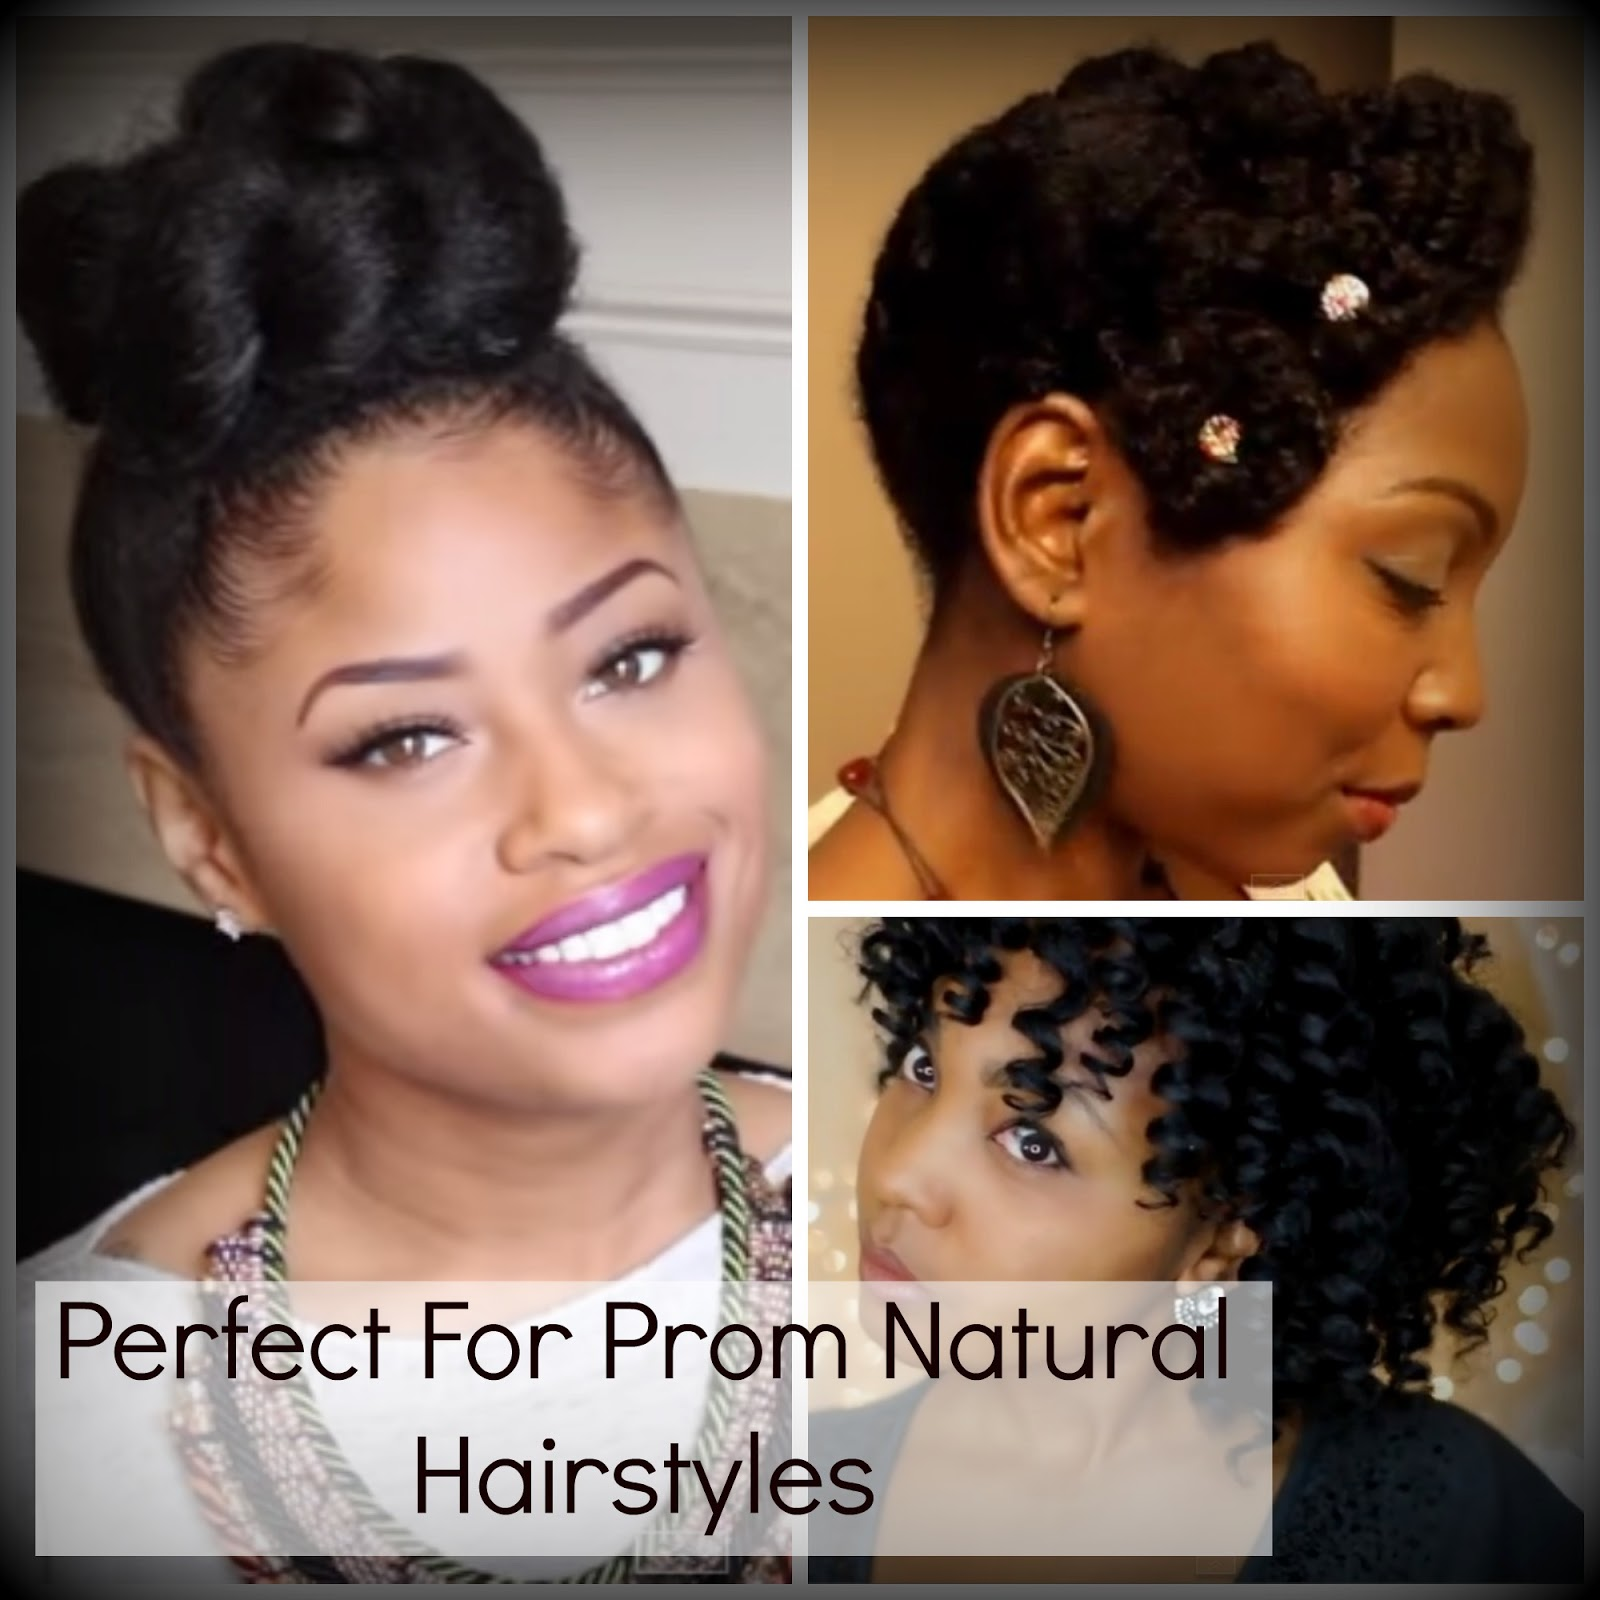 Perfect Prom Hairstyles: Perfect For Prom Natural Hairstyles